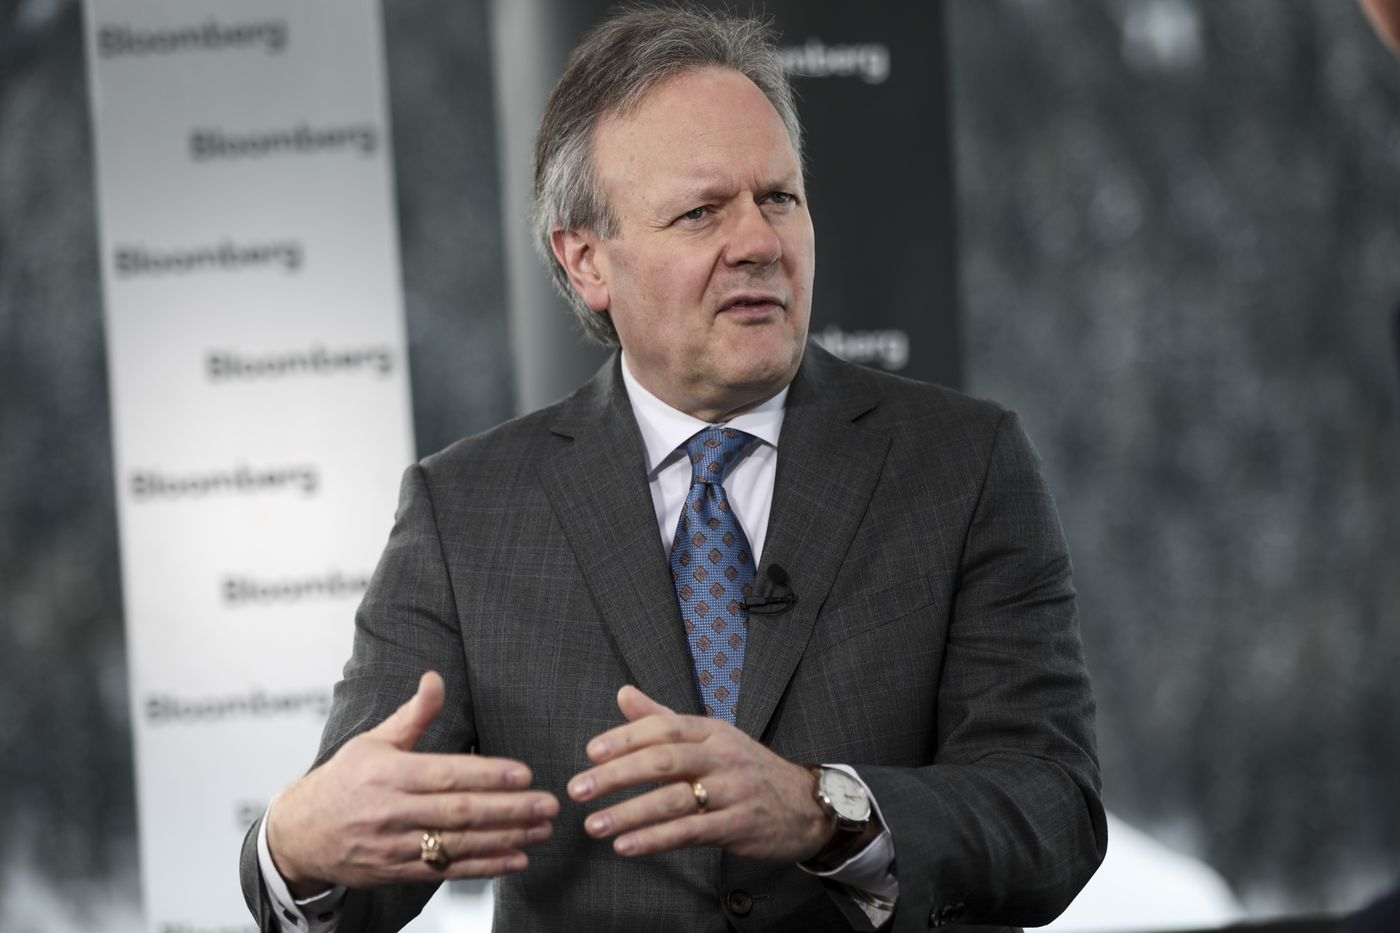 Poloz Sees Potential to Fuel Canada Expansion Without Inflation